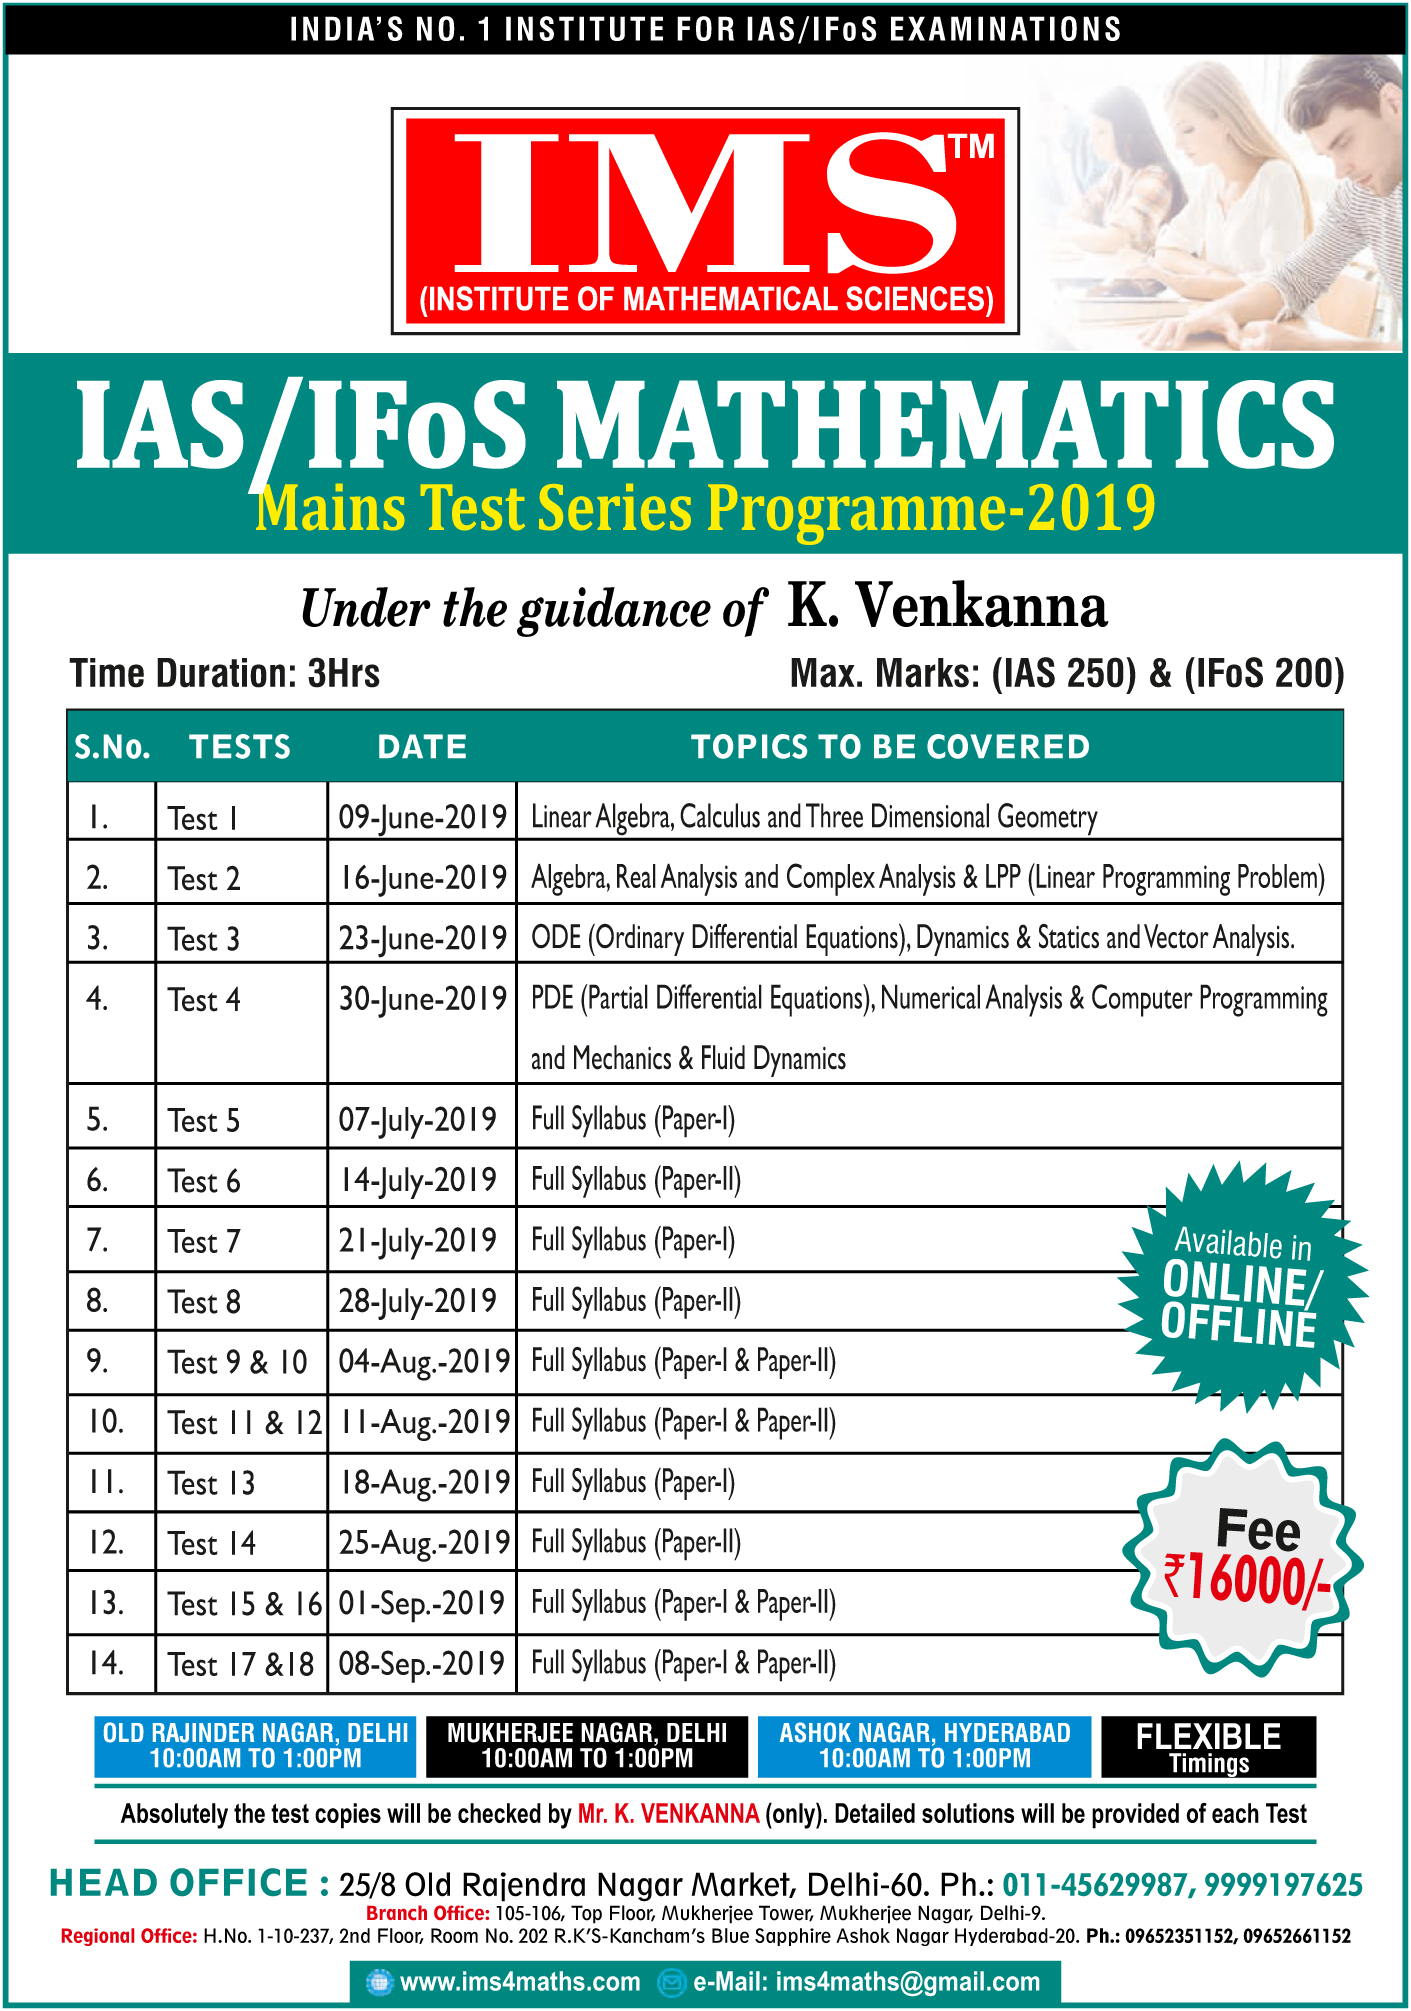 Mathematics Mains Test Series Schedule